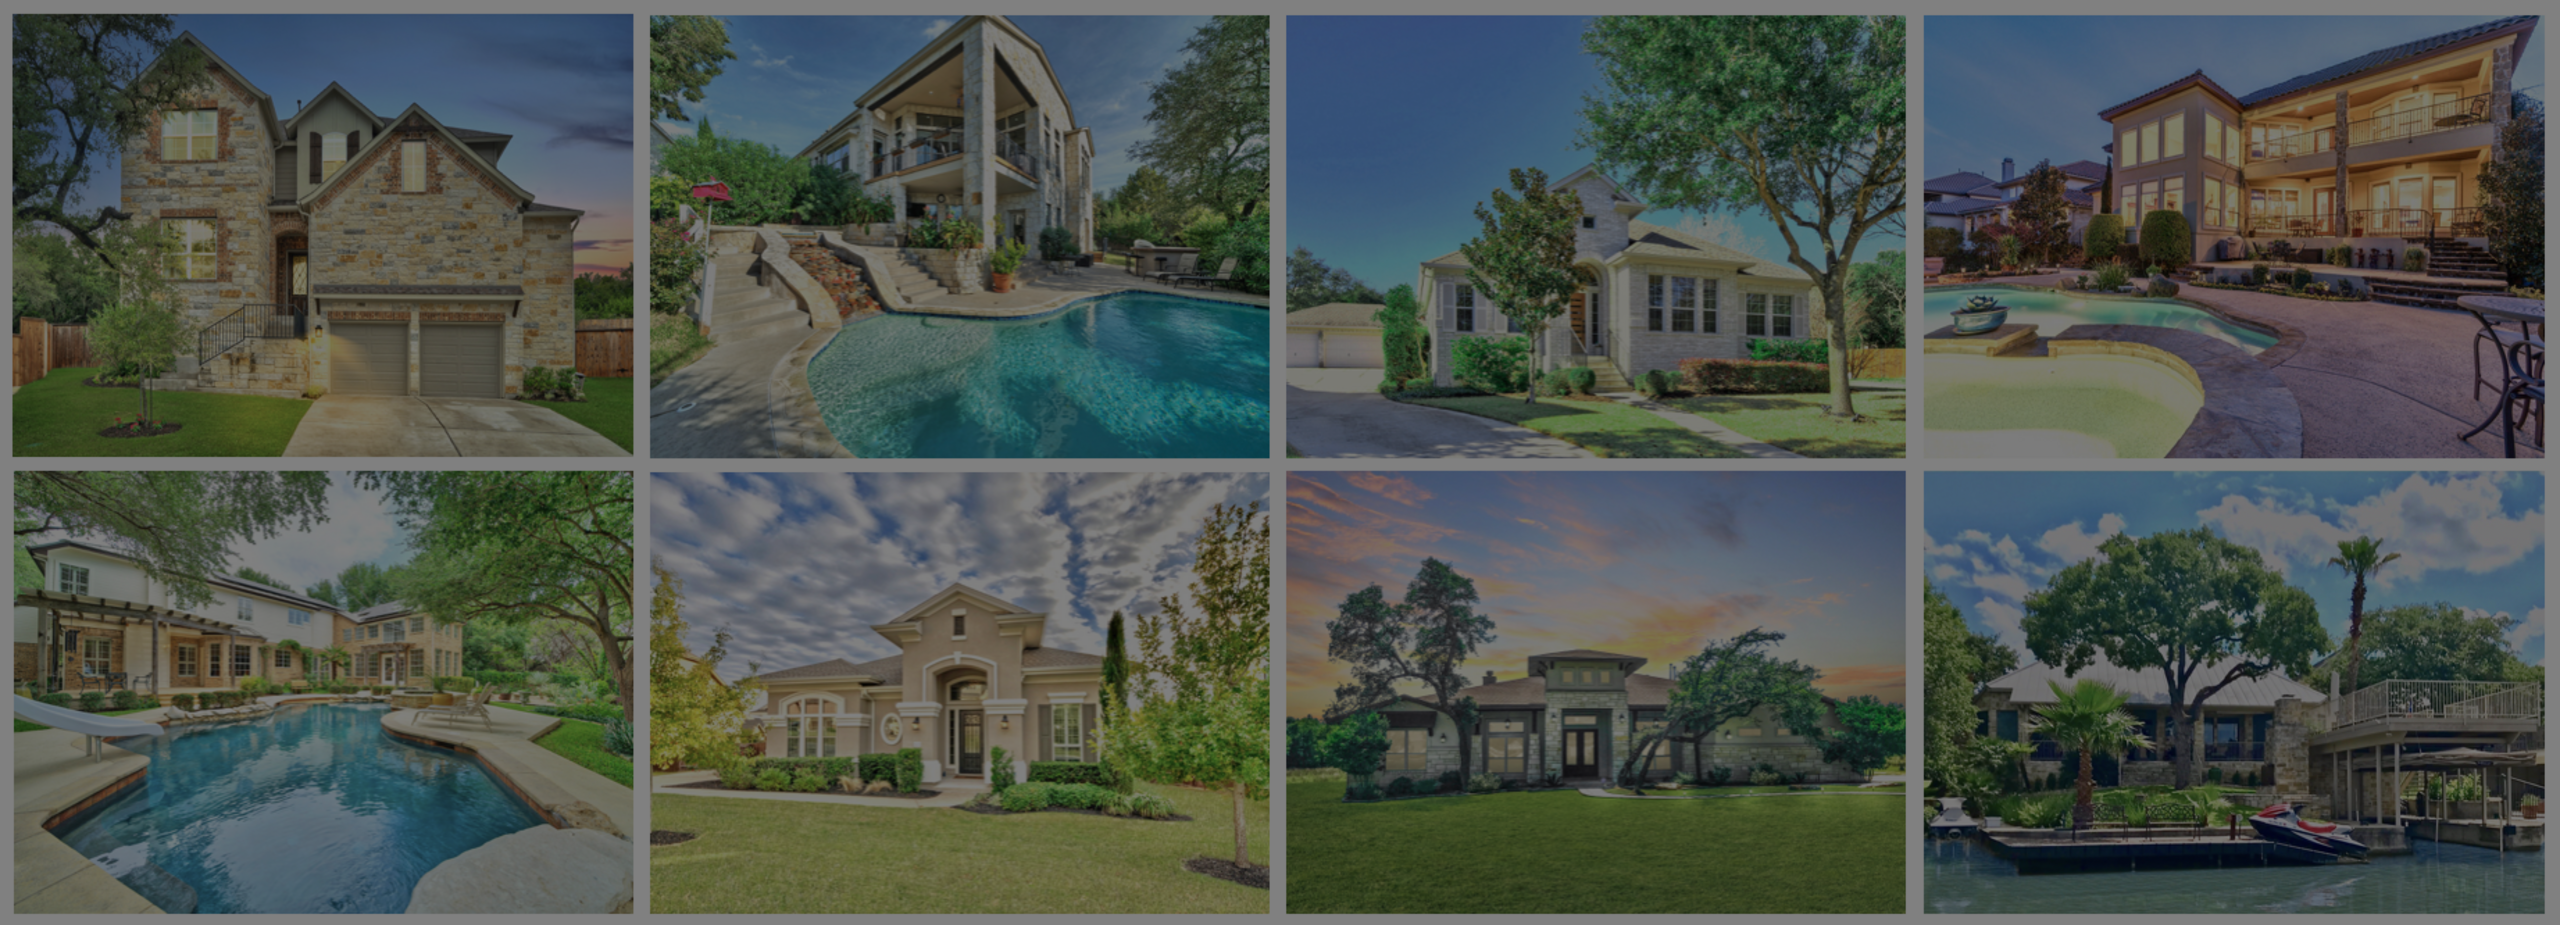 A FEW OF THE HOMES SOLD BY THE JULIE REISTRUP TEAM